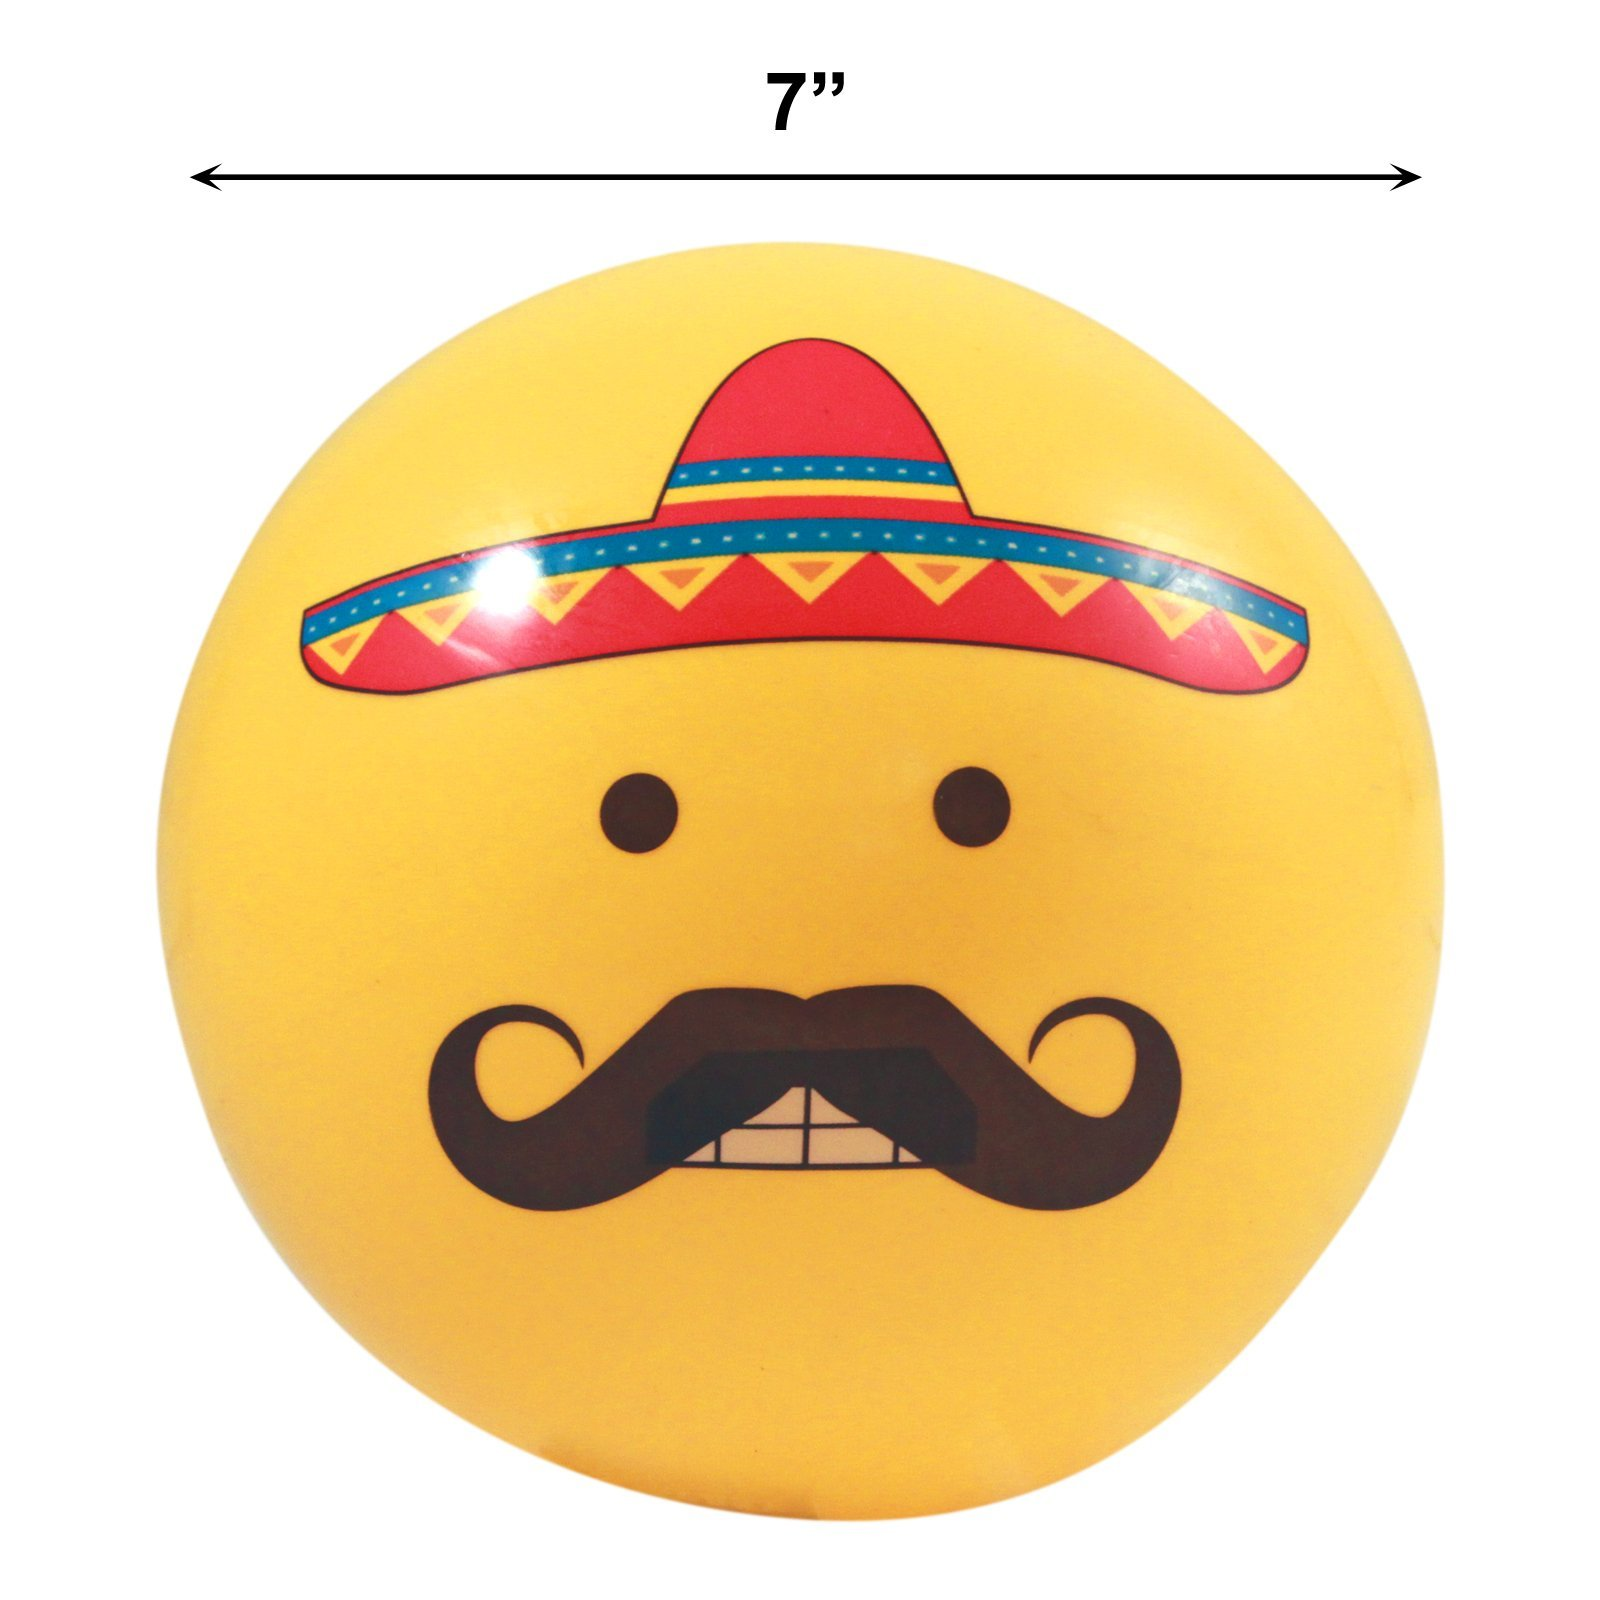 Inflatable Emoji Party Pool Beach Ball for Outdoor Adult and Kid Fun - Mustache